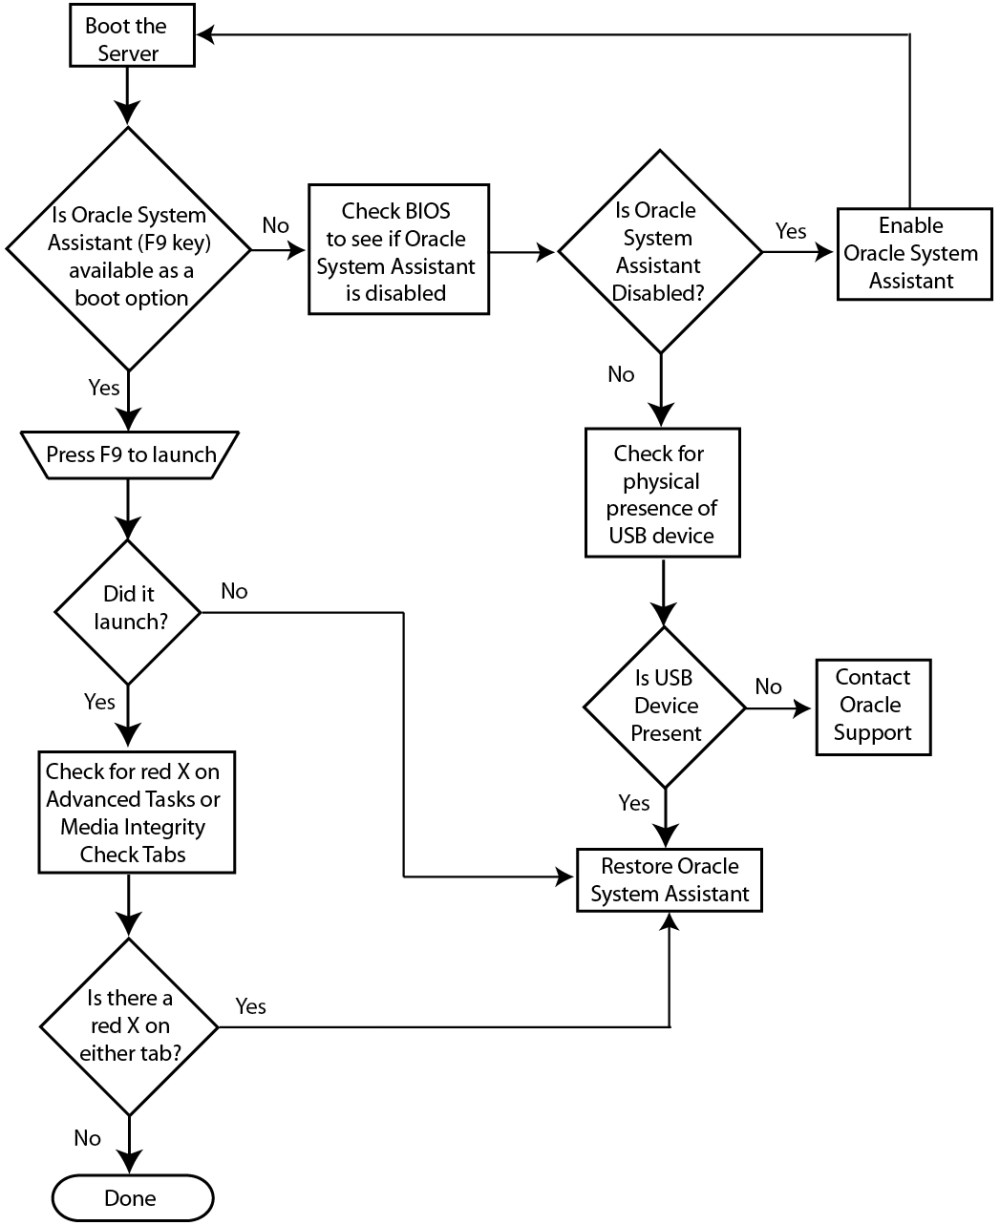 medium resolution of image troubleshooting flowchart for oracle system assistant